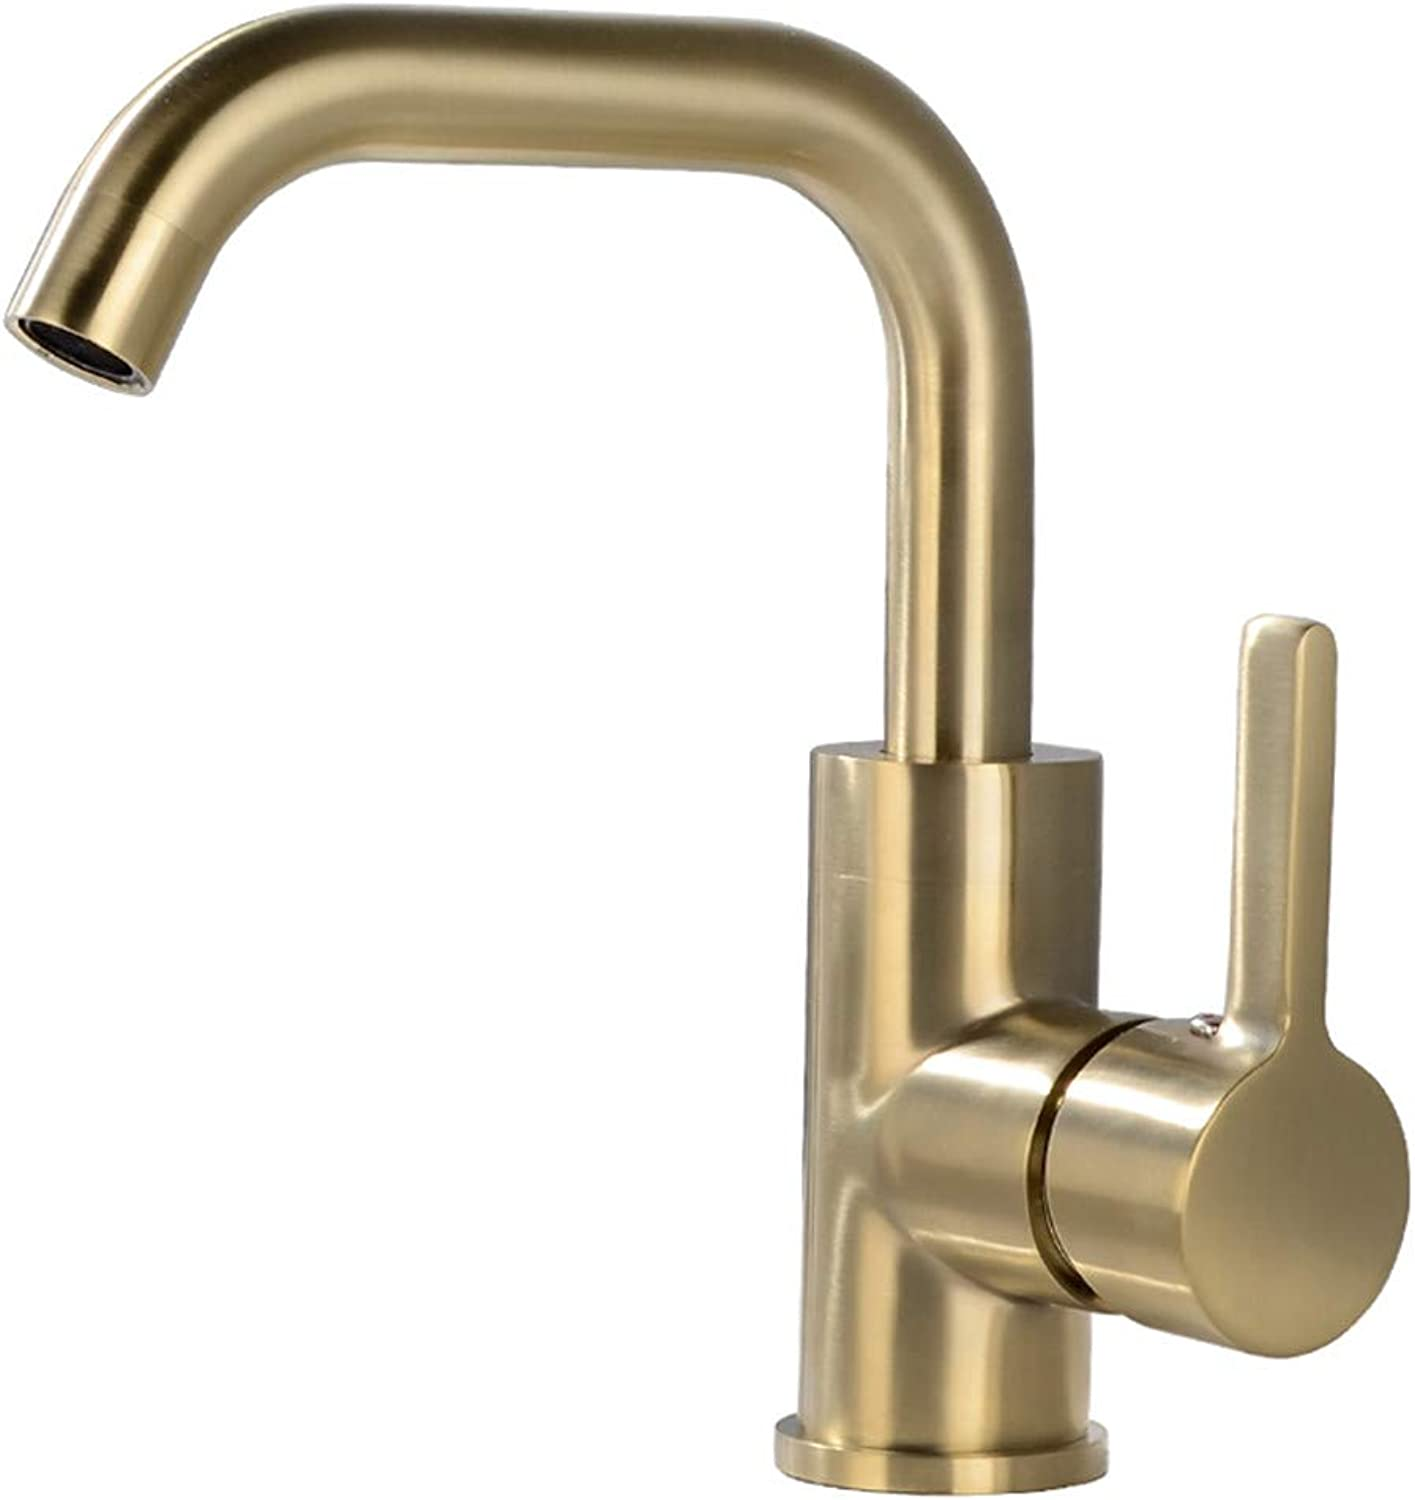 PajCzh Taps Taps Faucet Faucet Hotel Basin Faucet Copper Hot And Cold Water Home Bathroom Wash Basin Bathroom Basin Single Hole Faucet, A, 1